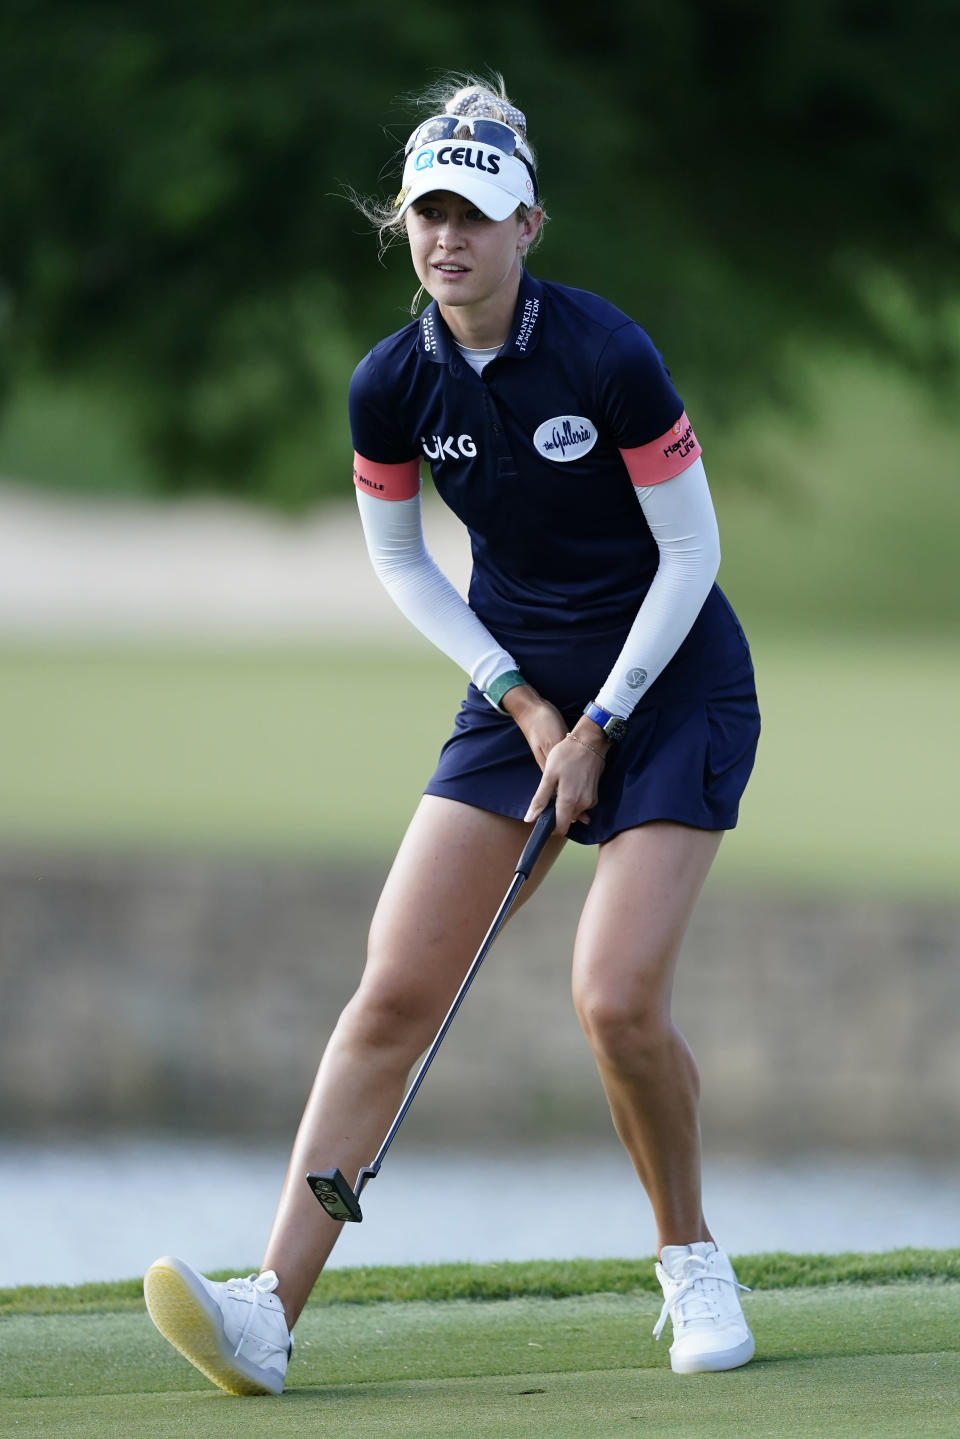 Nelly Korda react after making a putt for birdie on the eighth hole during the second round of play in the KPMG Women's PGA Championship golf tournament Friday, June 25, 2021, in Johns Creek, Ga. (AP Photo/John Bazemore)